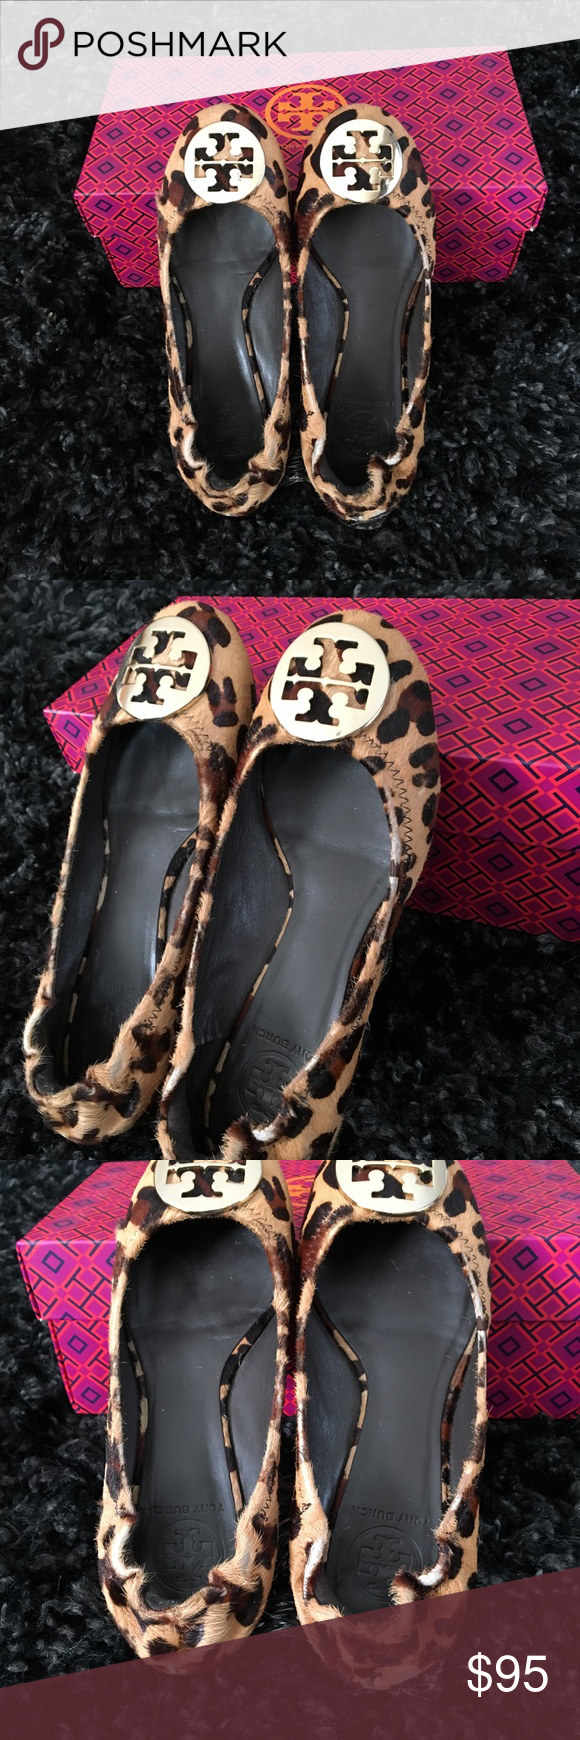 576085ae7d3a Authentic leopard print Tory Burch Flats! Authentic TB flats perfect for  fall! These are